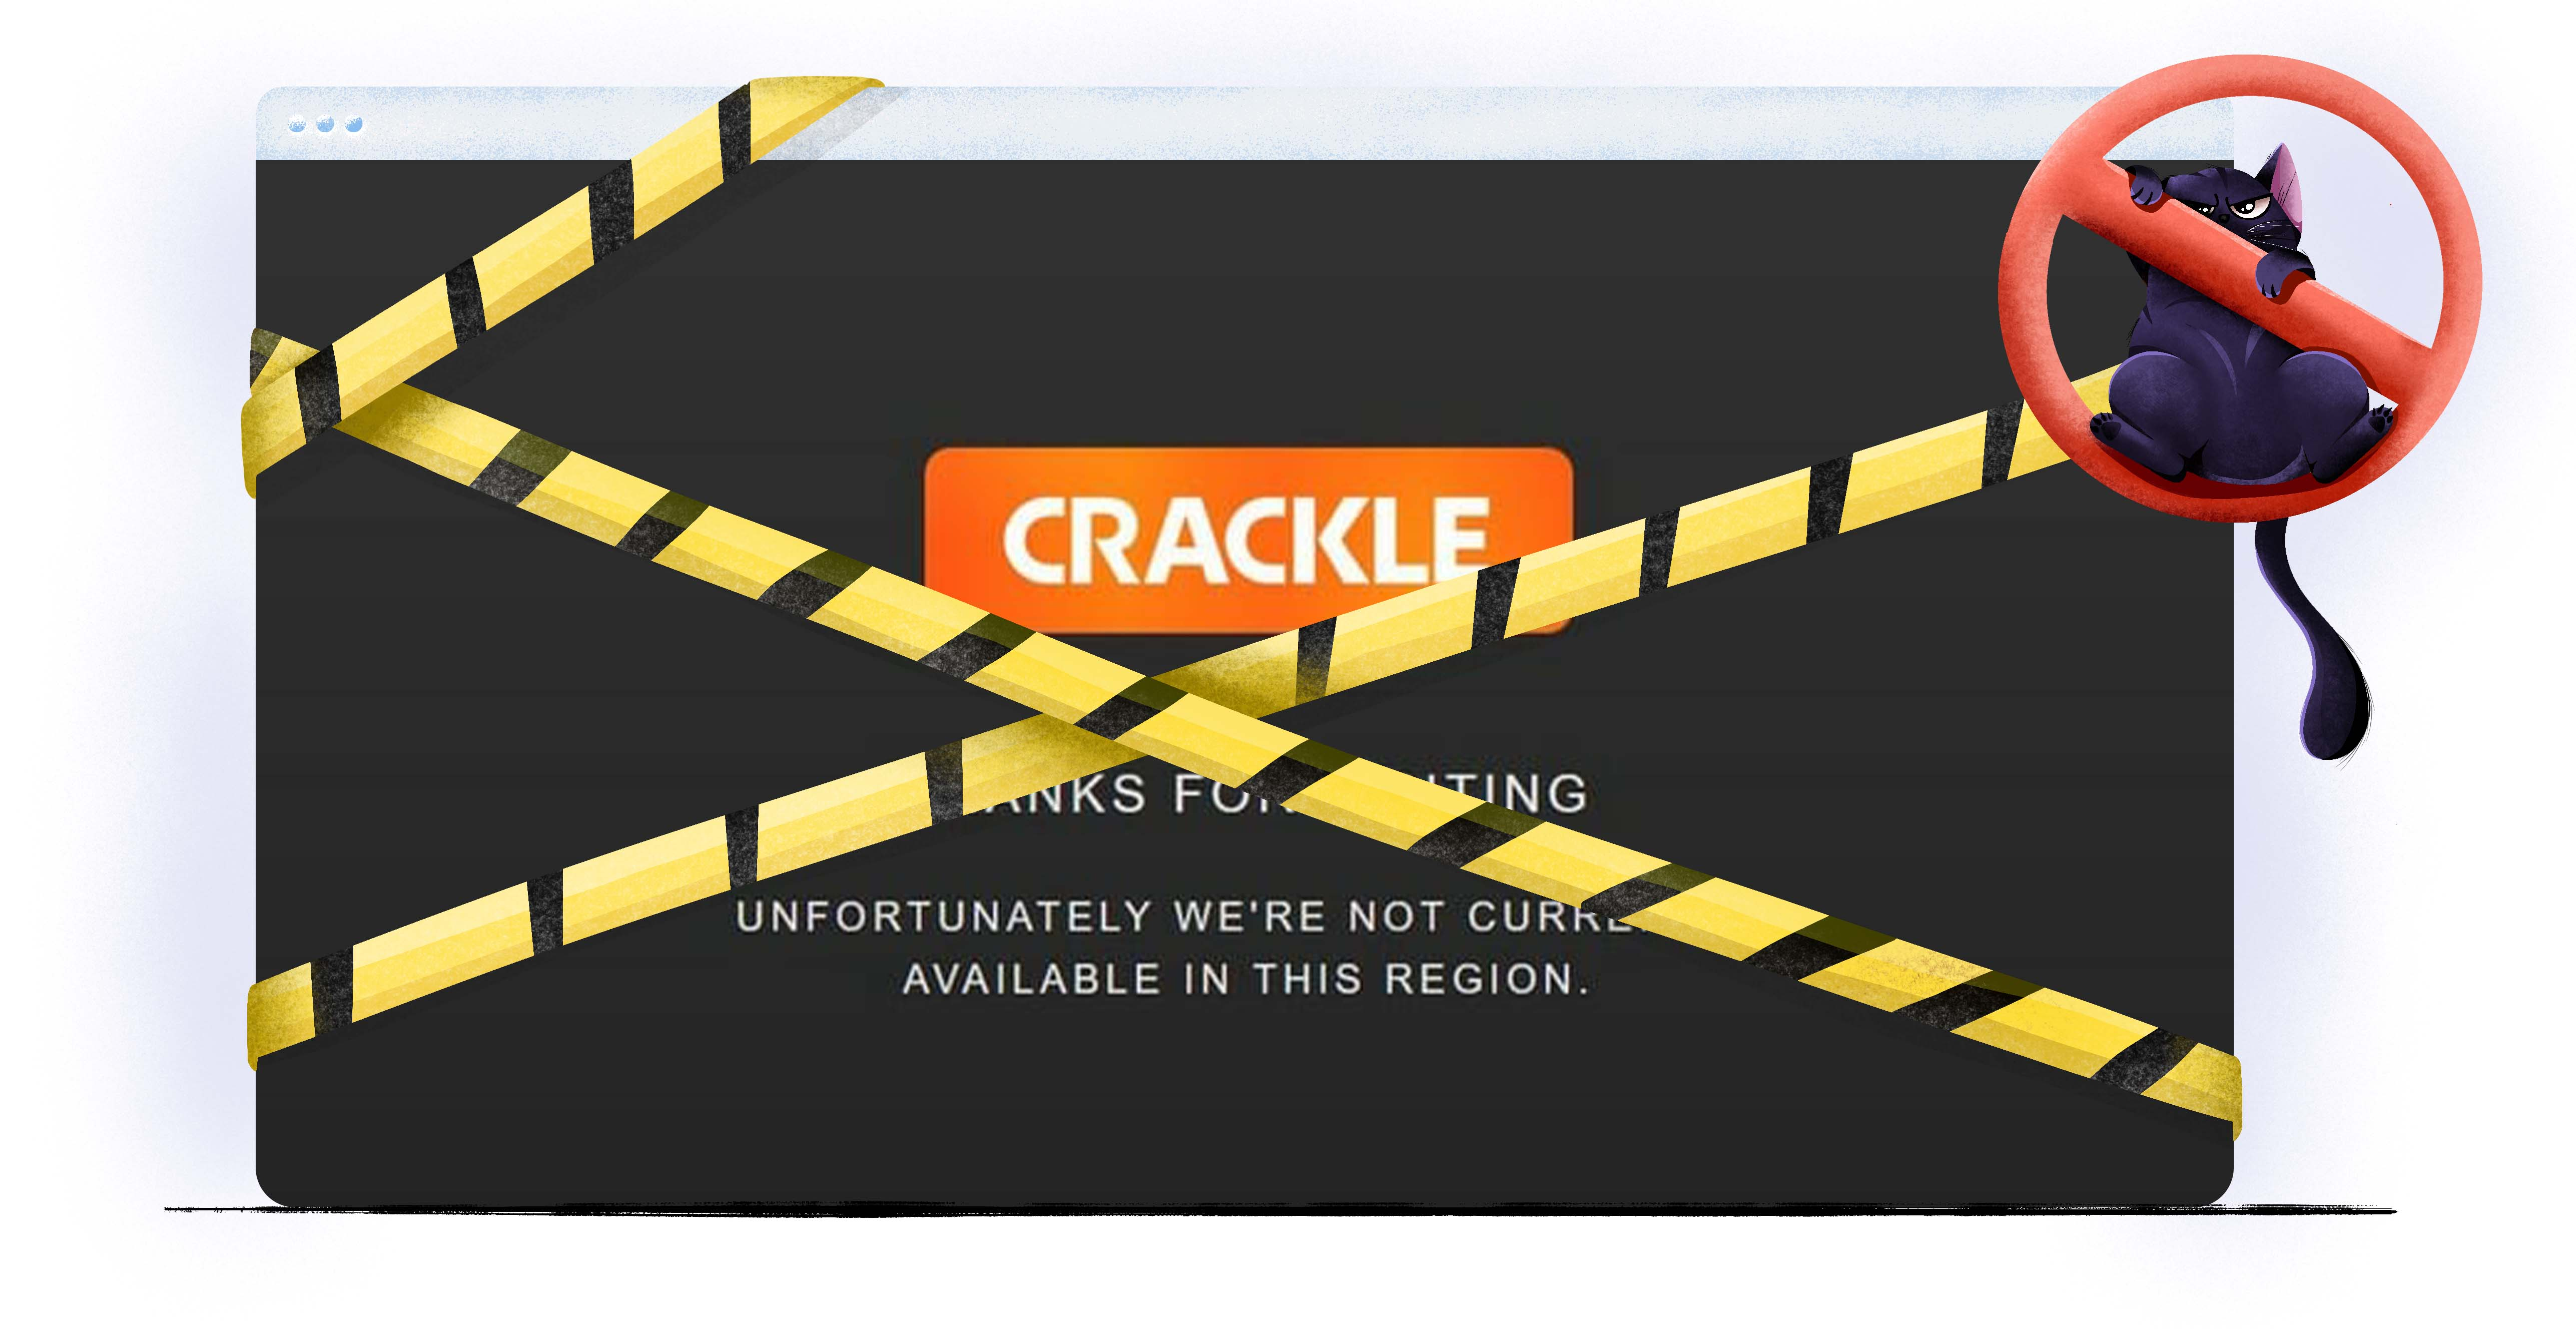 Crackle not available in your region